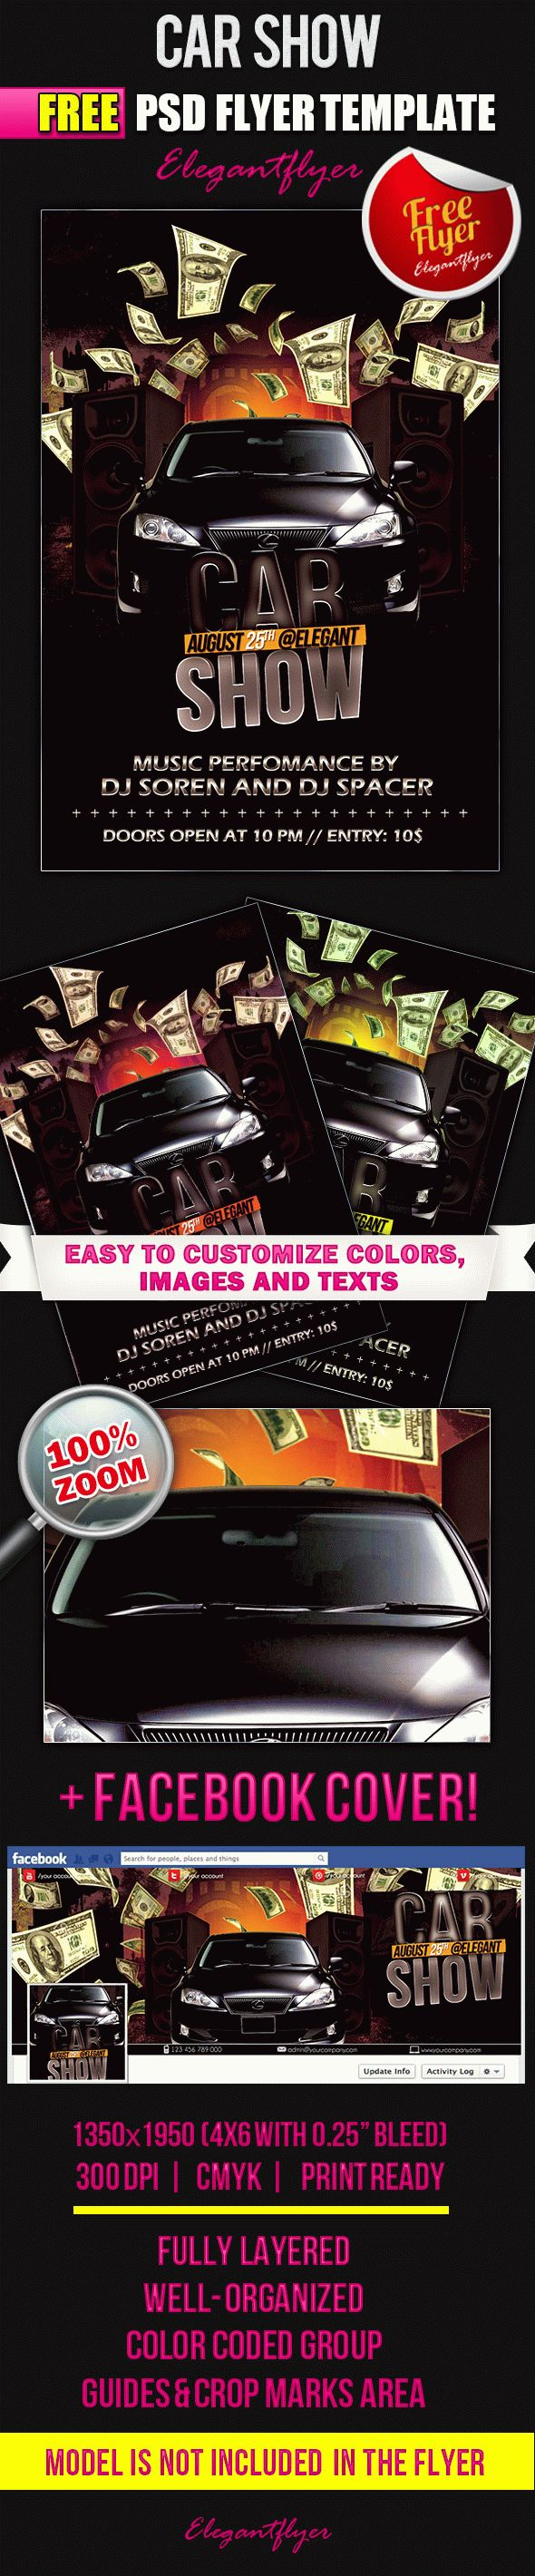 Car Show Free Flyer PSD Template Facebook Cover by ElegantFlyer – Car Flyer Template